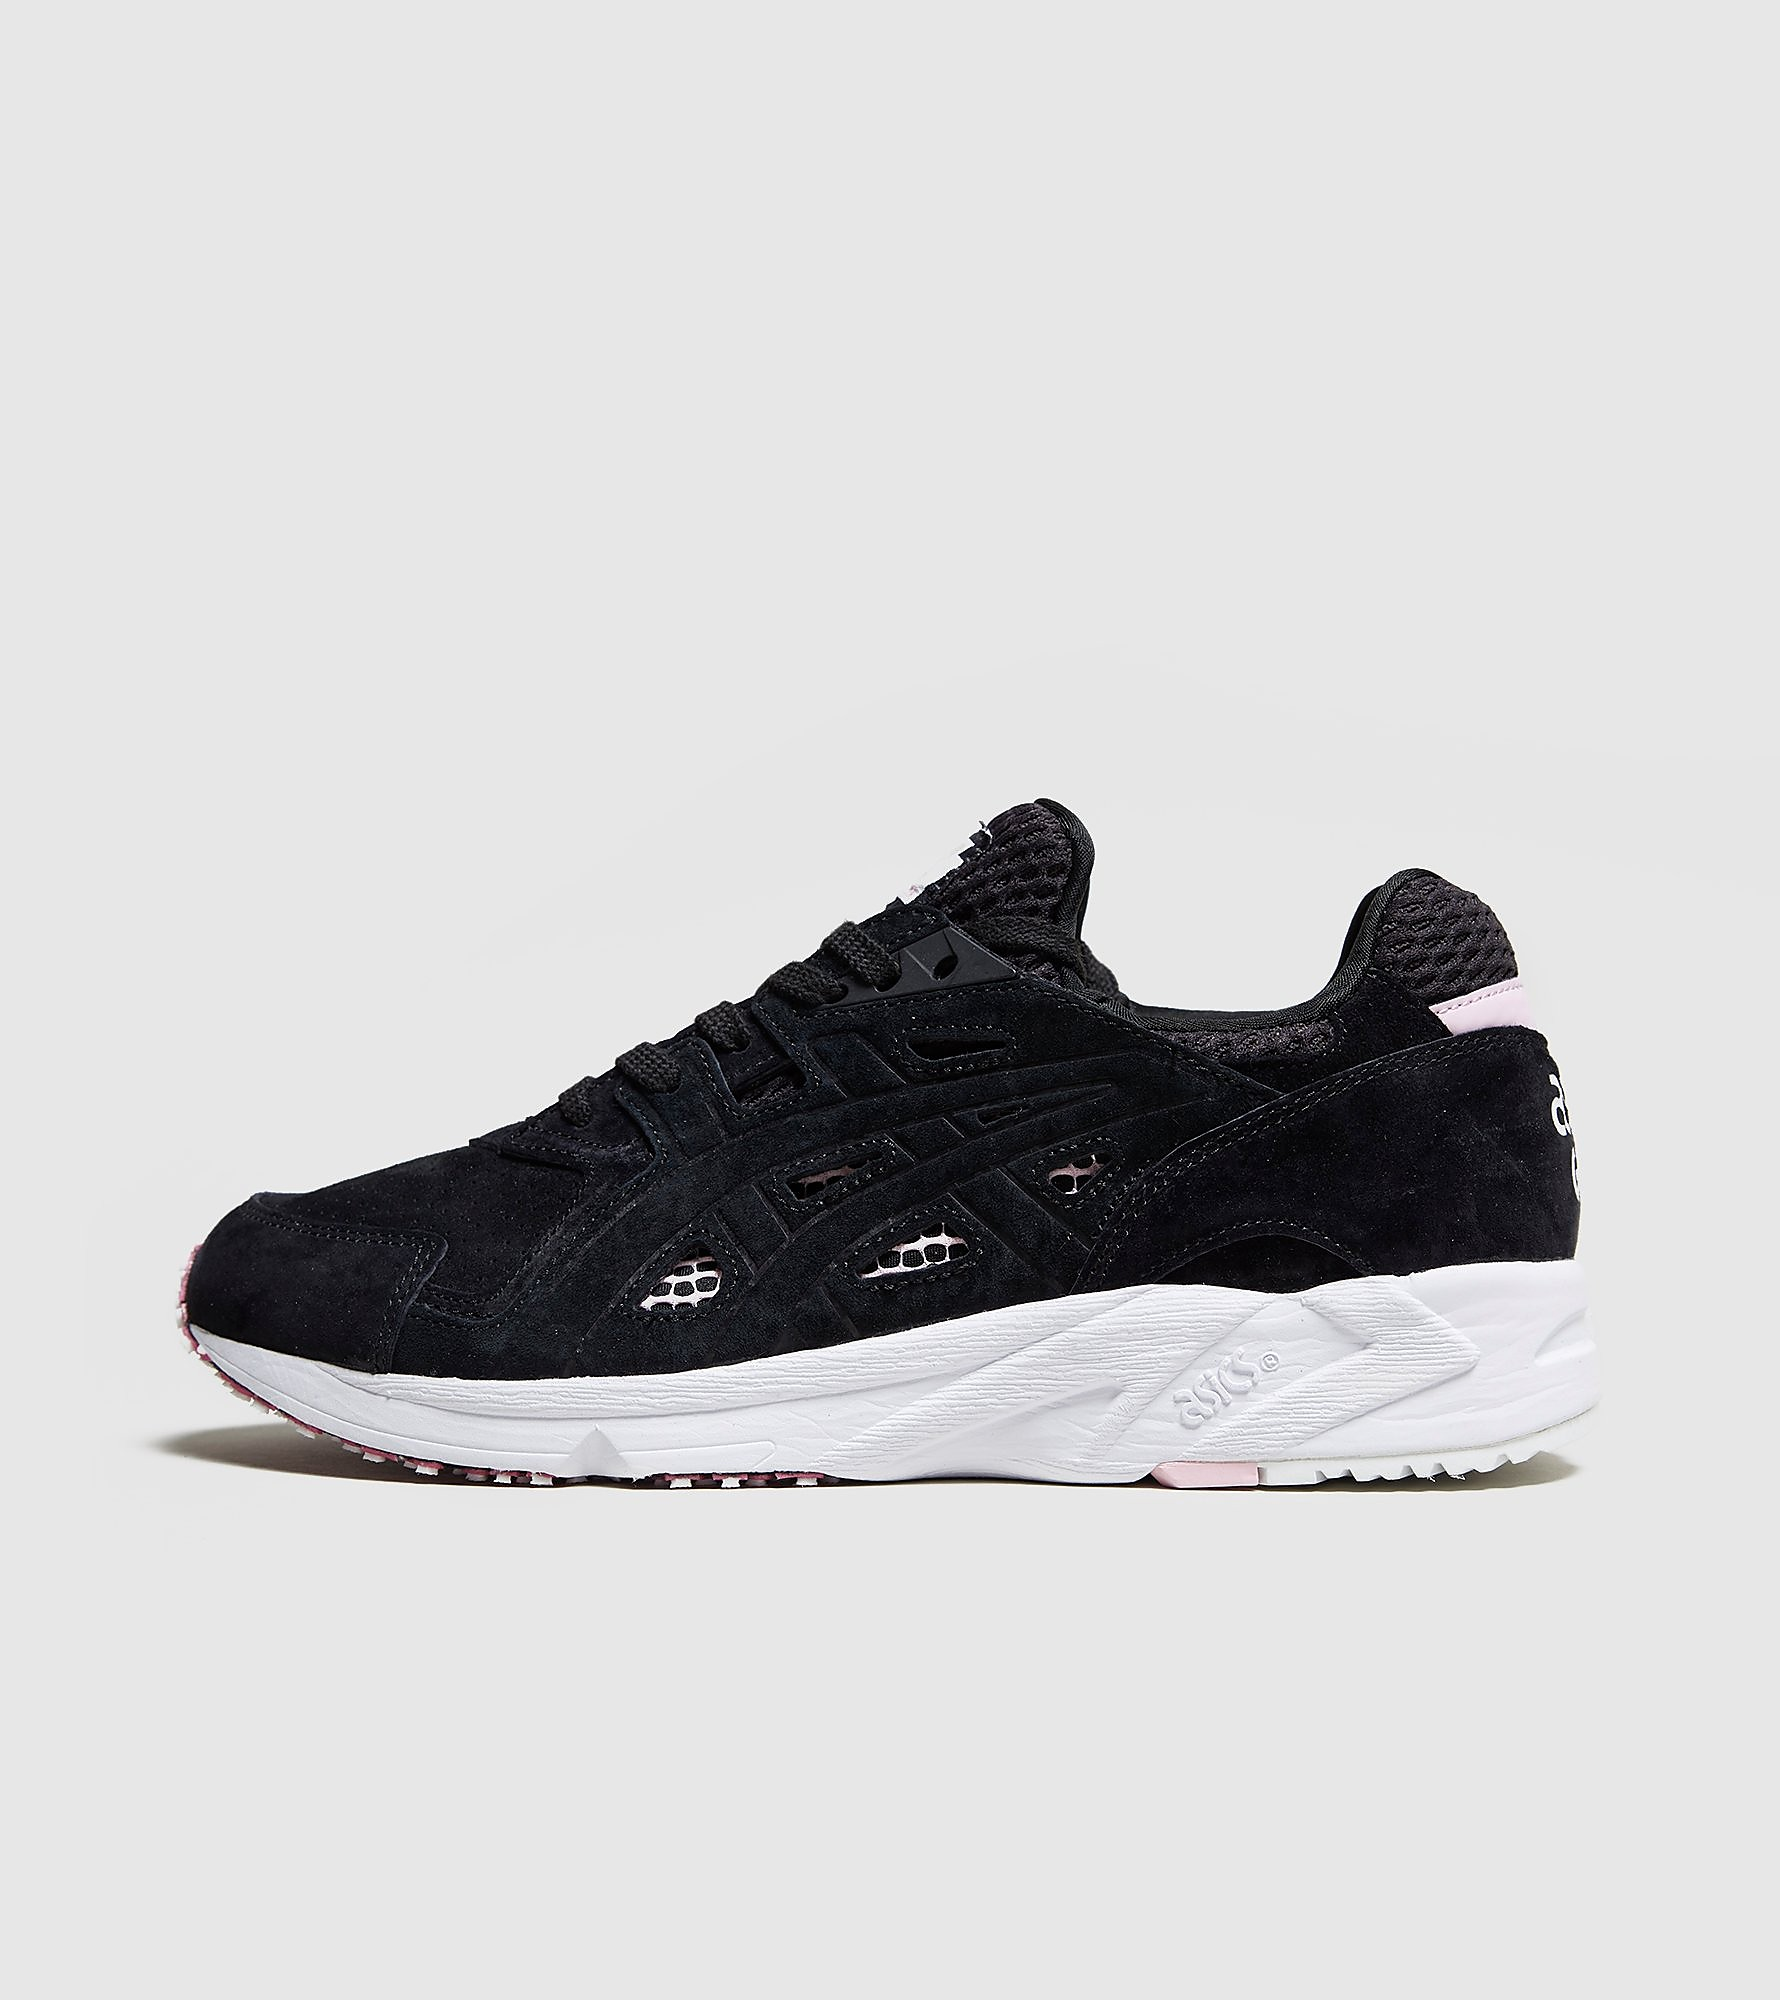 ASICS TIGER GEL-DS Trainer - size? Exclusive